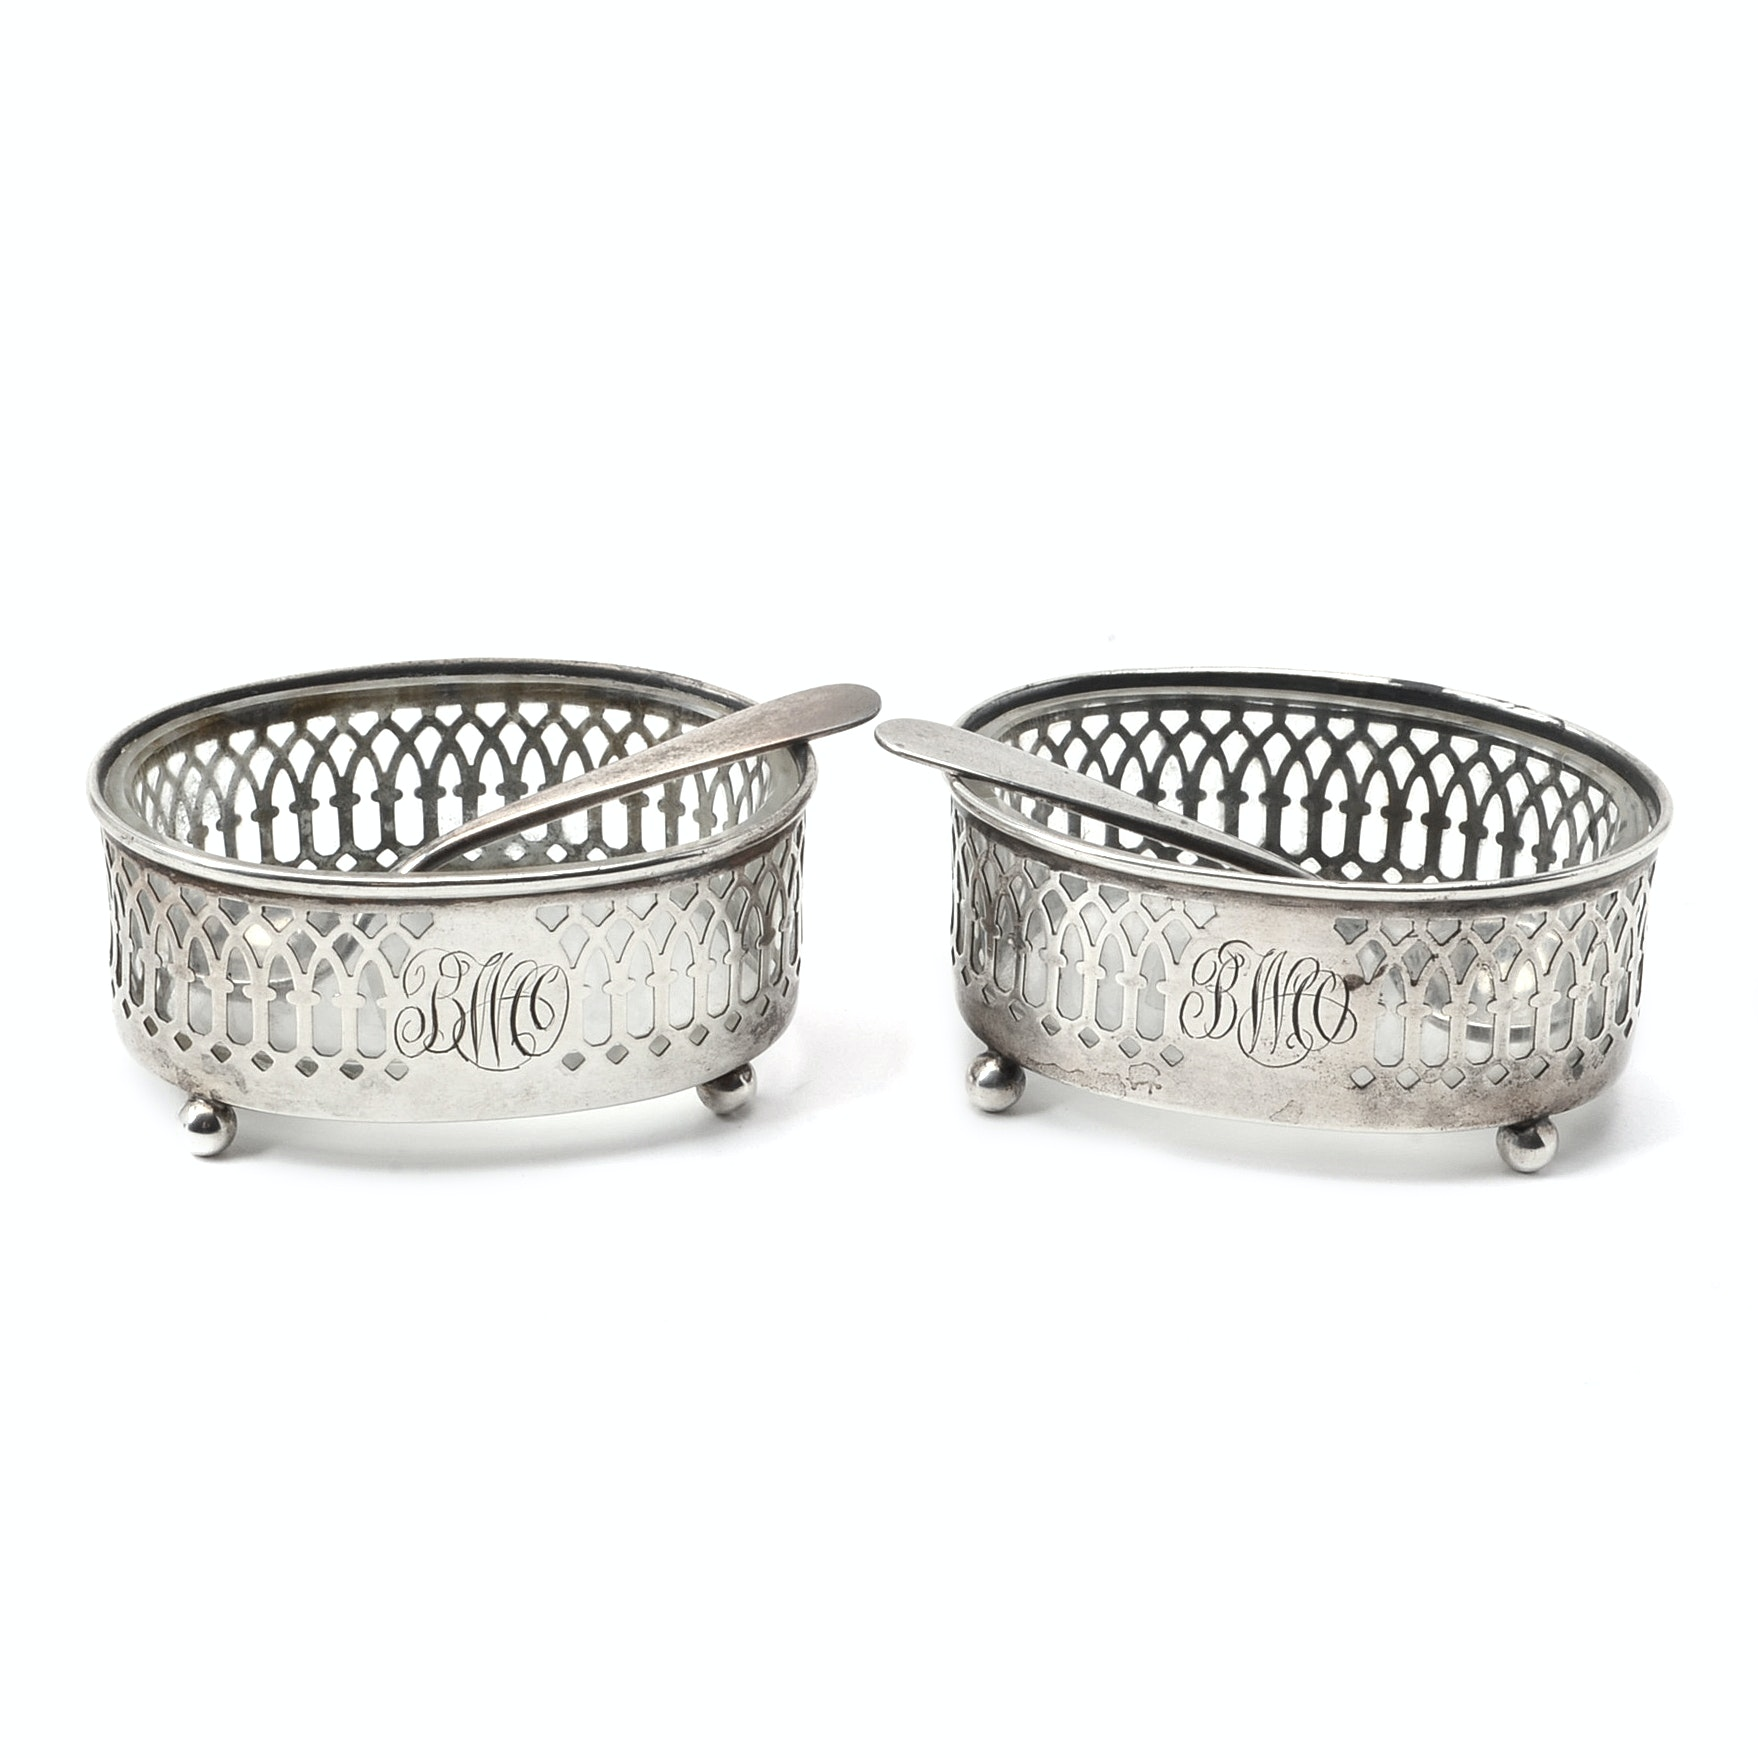 Pair of Henckel Sterling Silver Cellars with Glass Inserts